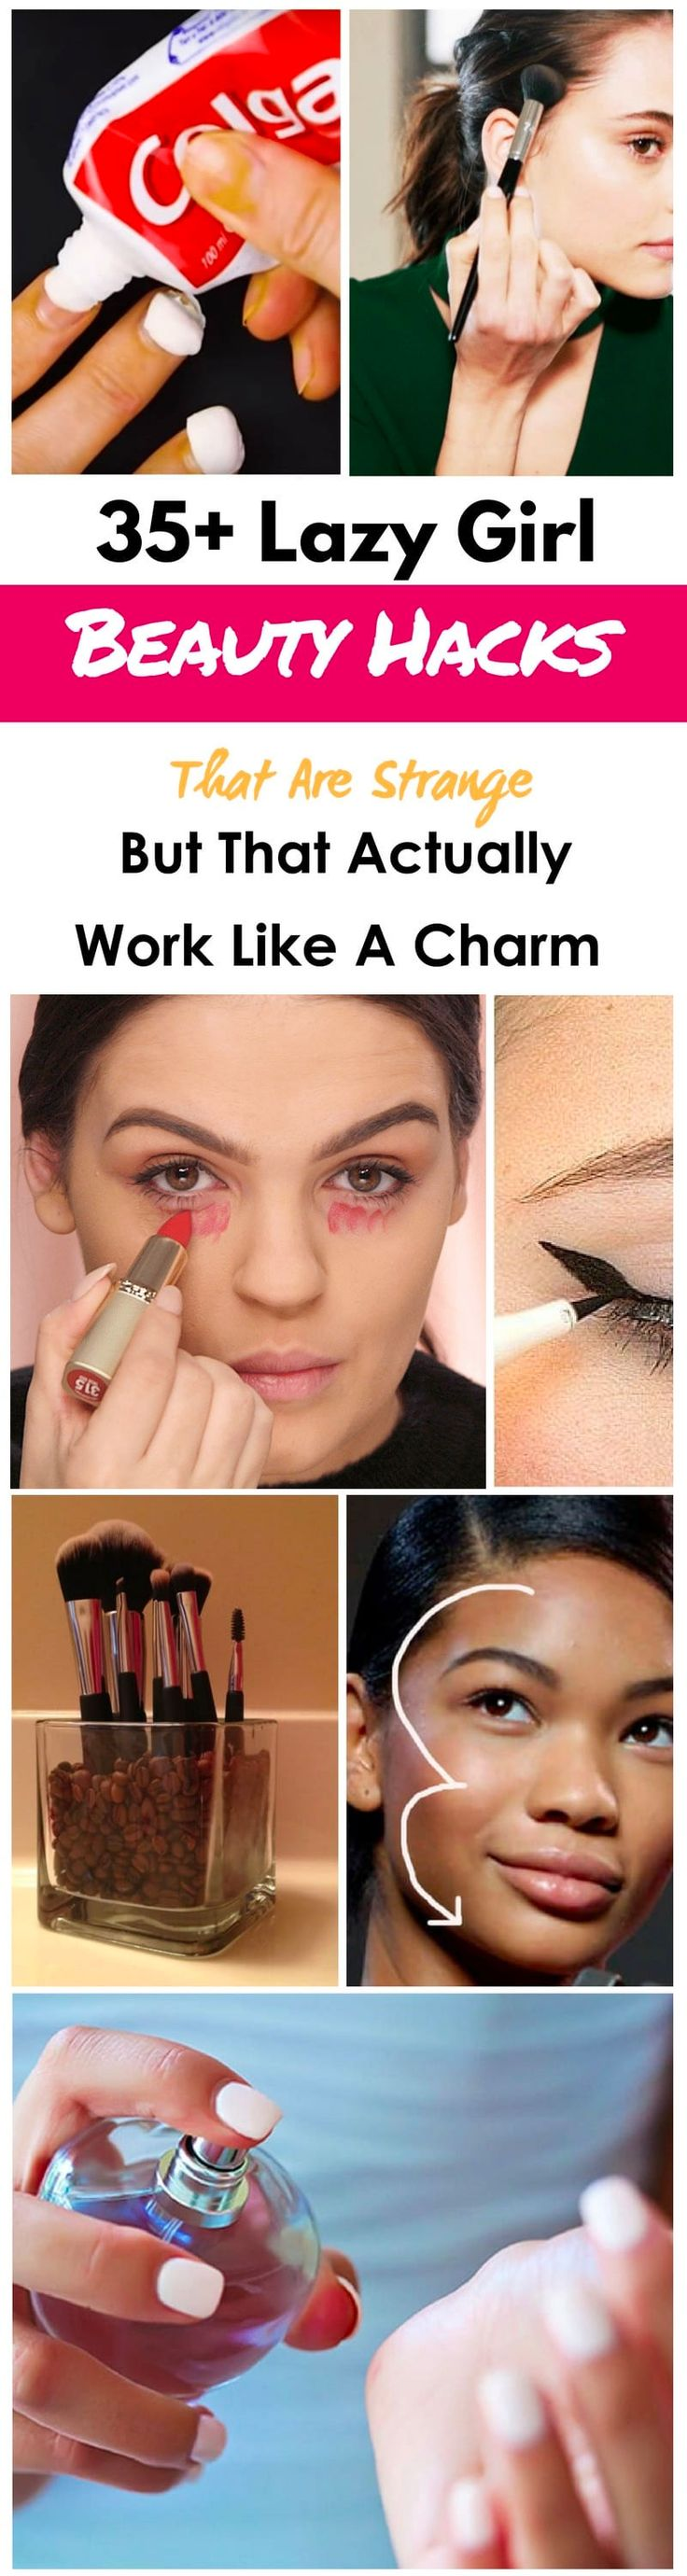 35 Lazy Girl Beauty Hacks That Are Strange But That